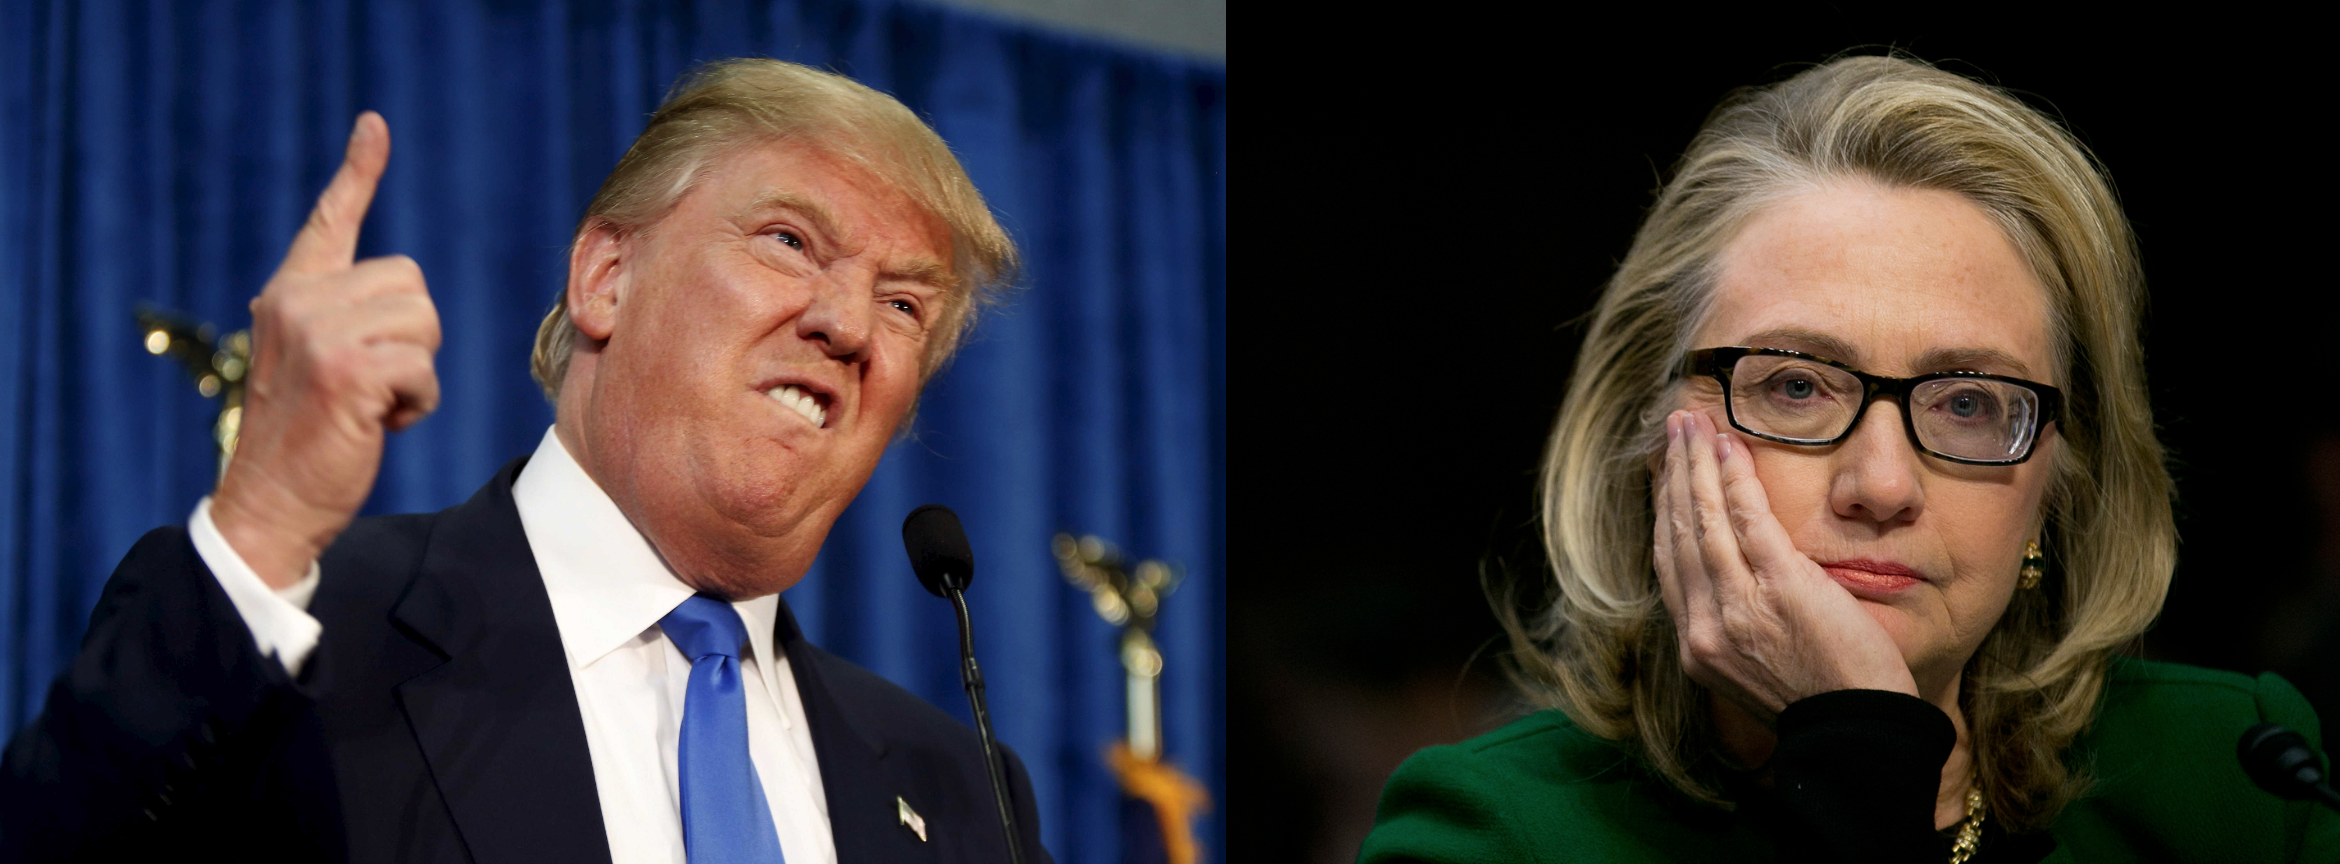 POLL CLOSED: Will President-Elect Trump Make Good on His Promise to Imprison Hillary Clinton? VIEW RESULTS